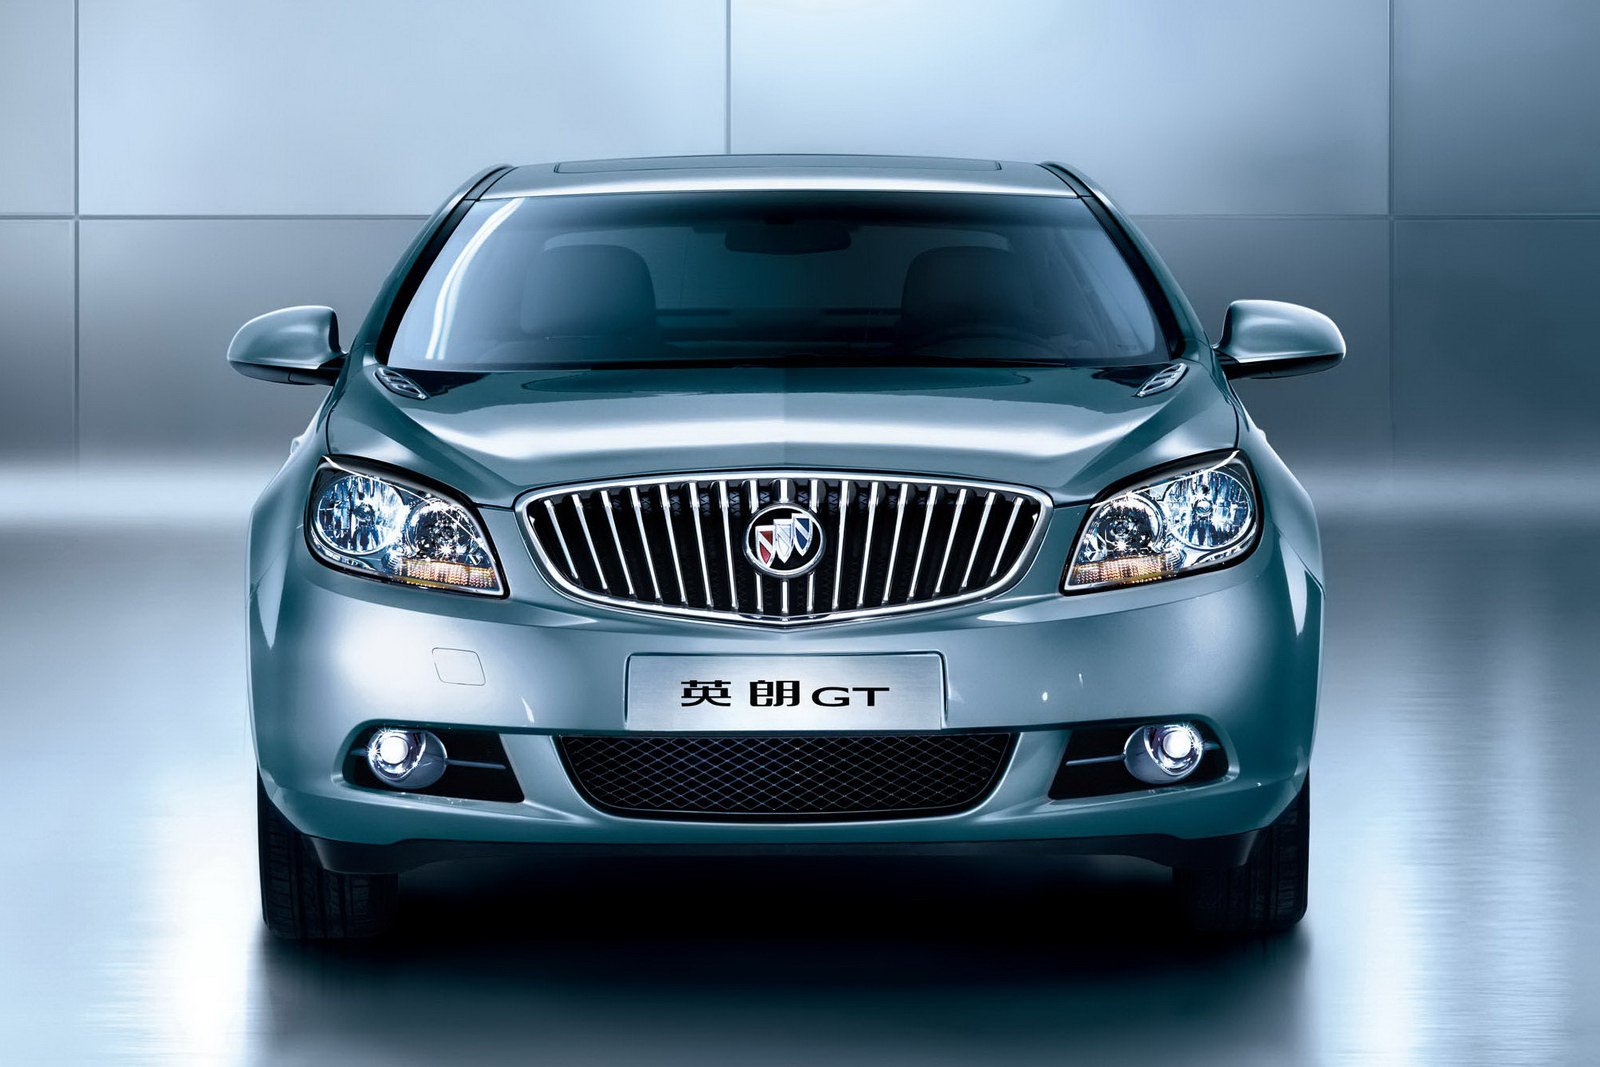 2010 Buick Verano Opel Astra Sedan To Be Built In